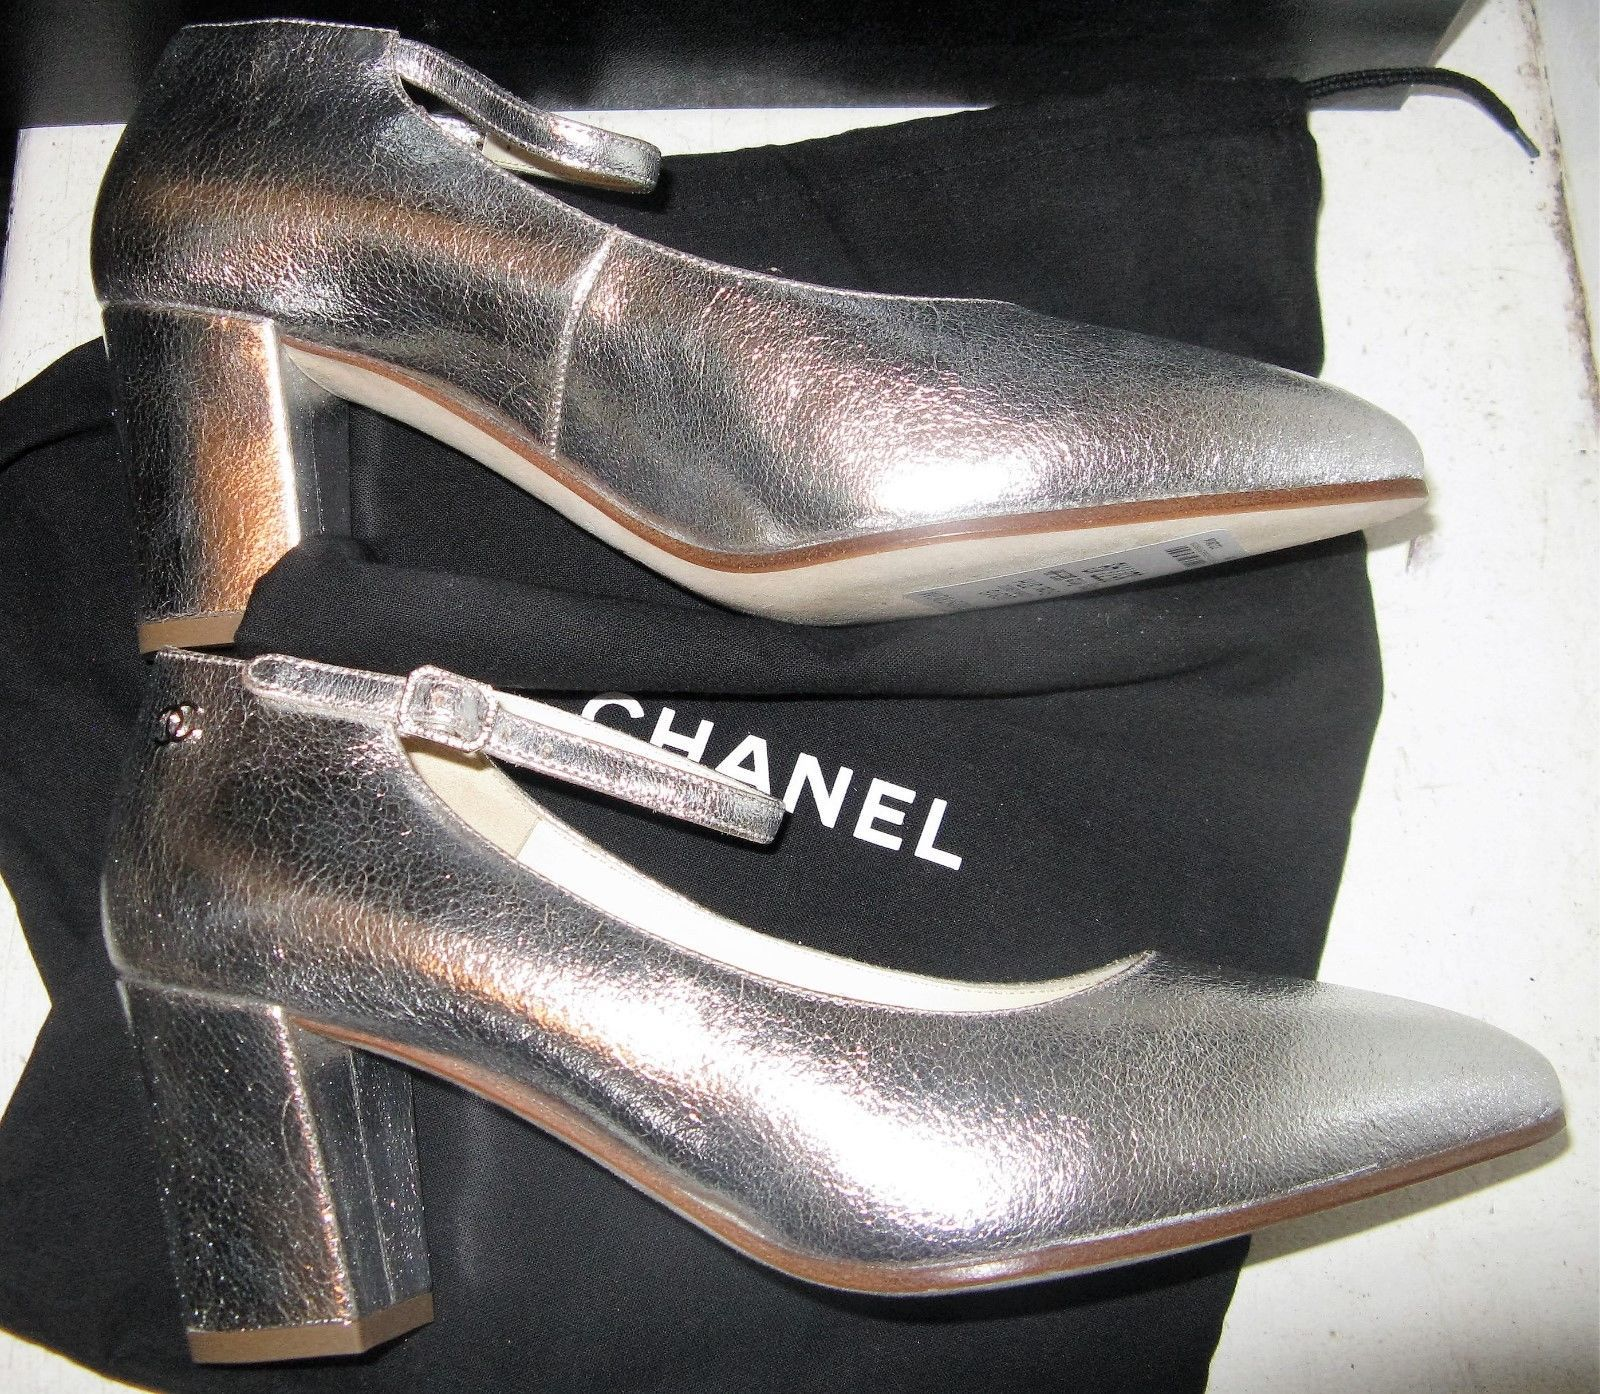 6d9ecb4b6d17 Chanel 16S G32050 Silver Mary Jane Pumps with strap black heel shoes 37.5